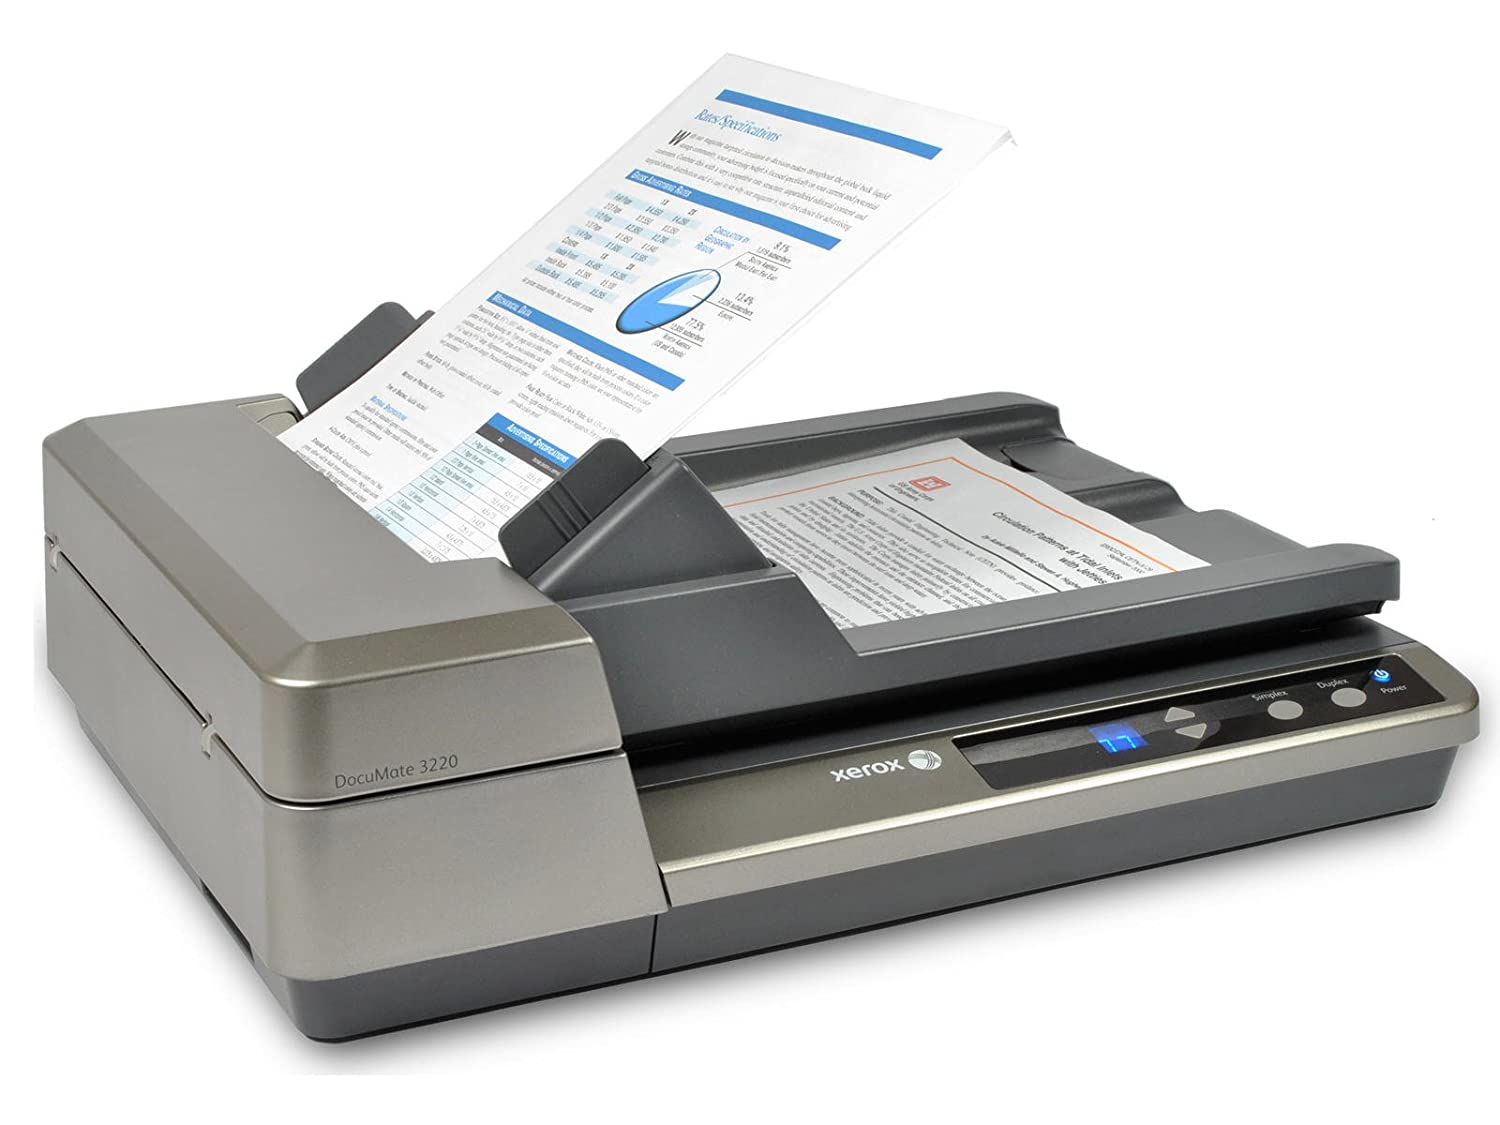 imageclass scanner laser and wireless mac colour all duplex one with pc document for es in printer fax copier color workforce canon feeder auto epson